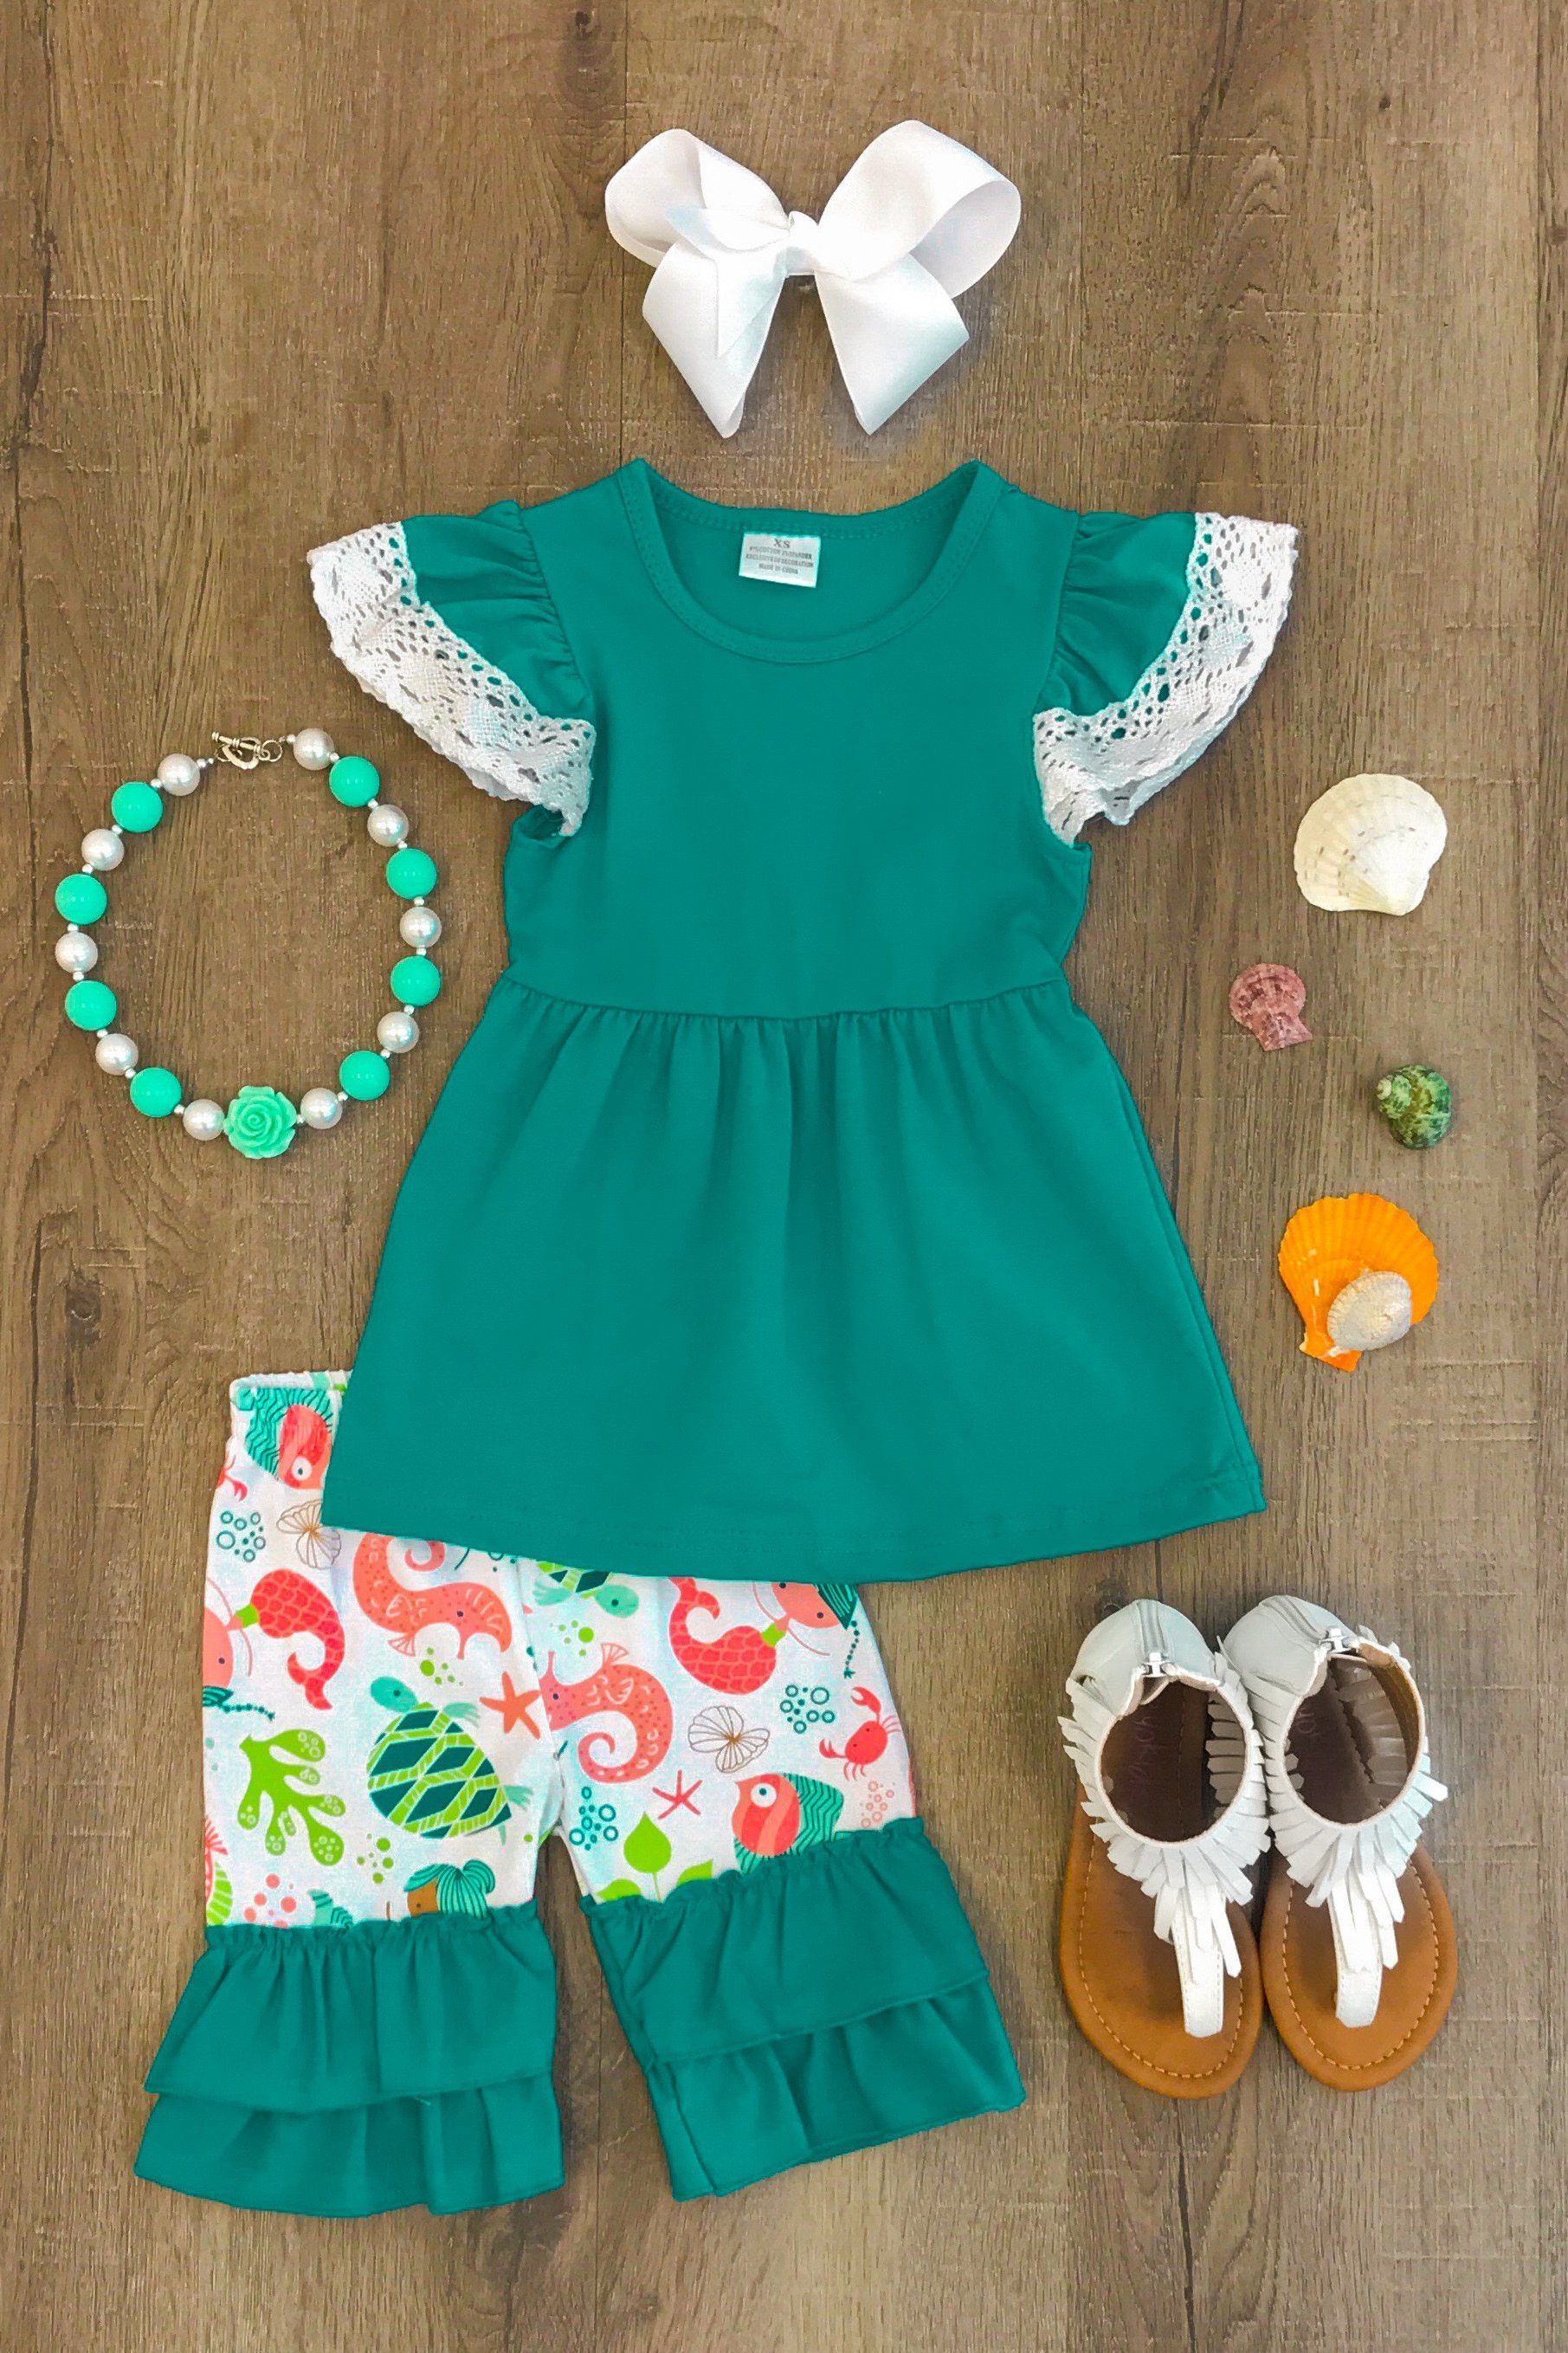 Teal Mermaid Crochet Short Set Boutique Outfits